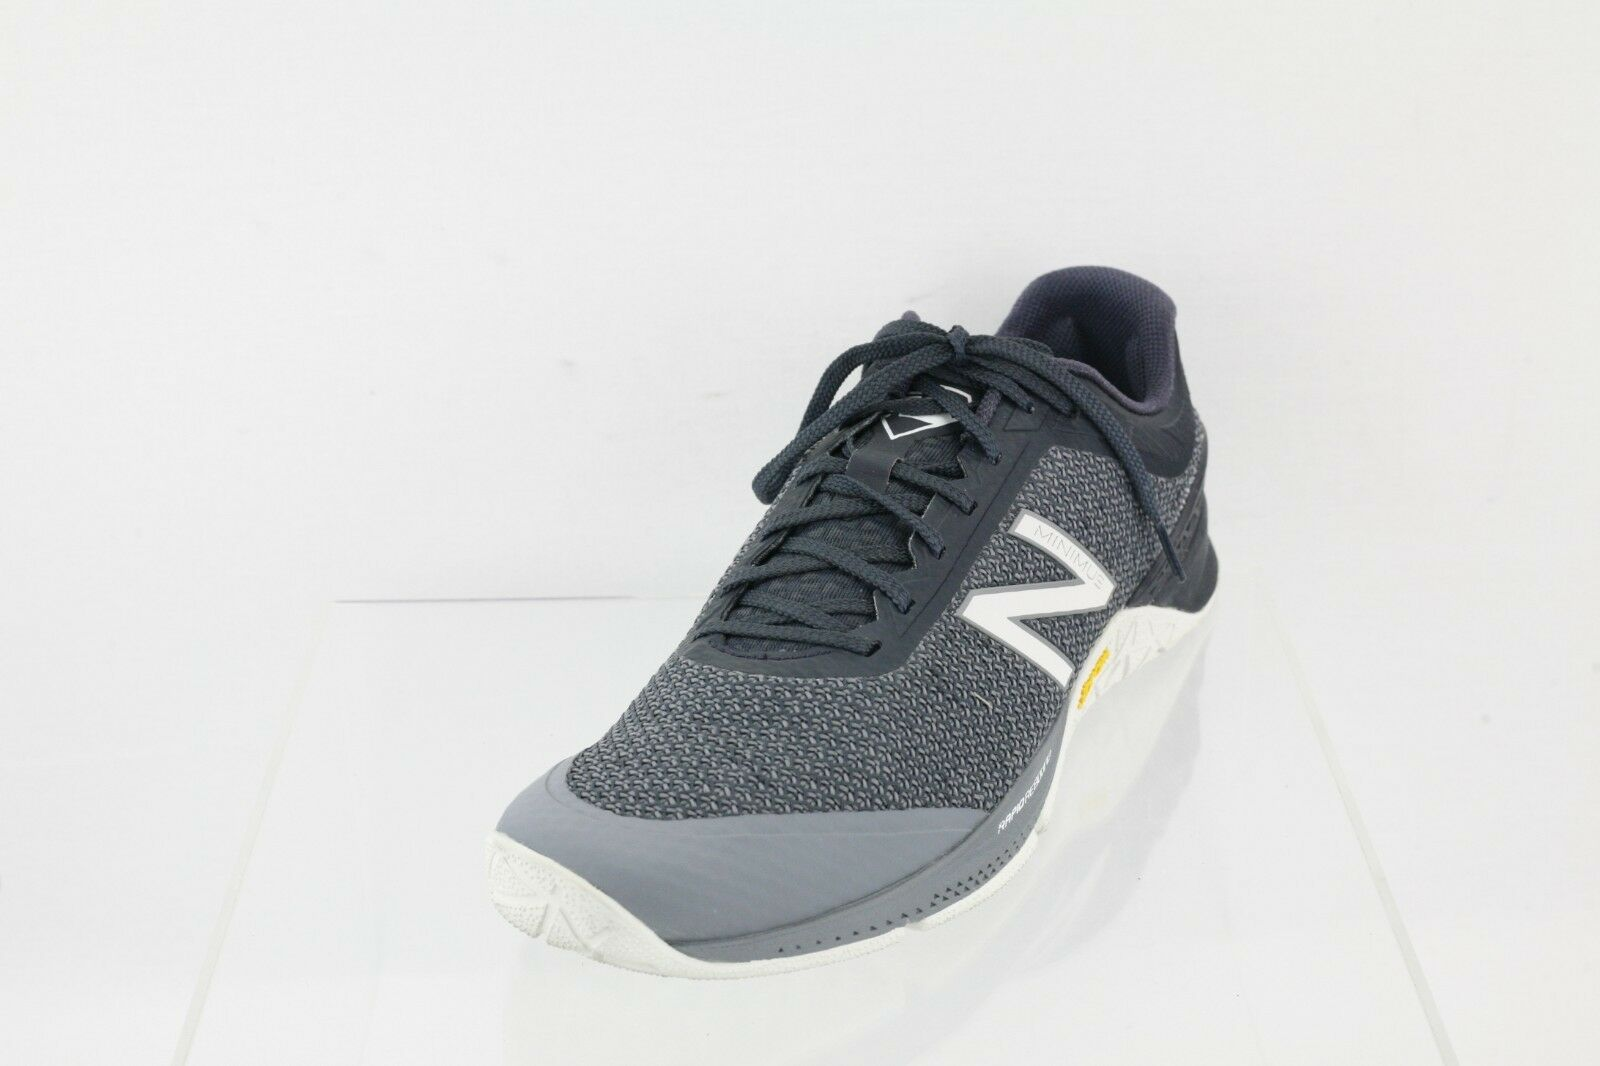 Men's New Balance MX40GP Grey Lace-up Athletic Running shoes Size 10 2E